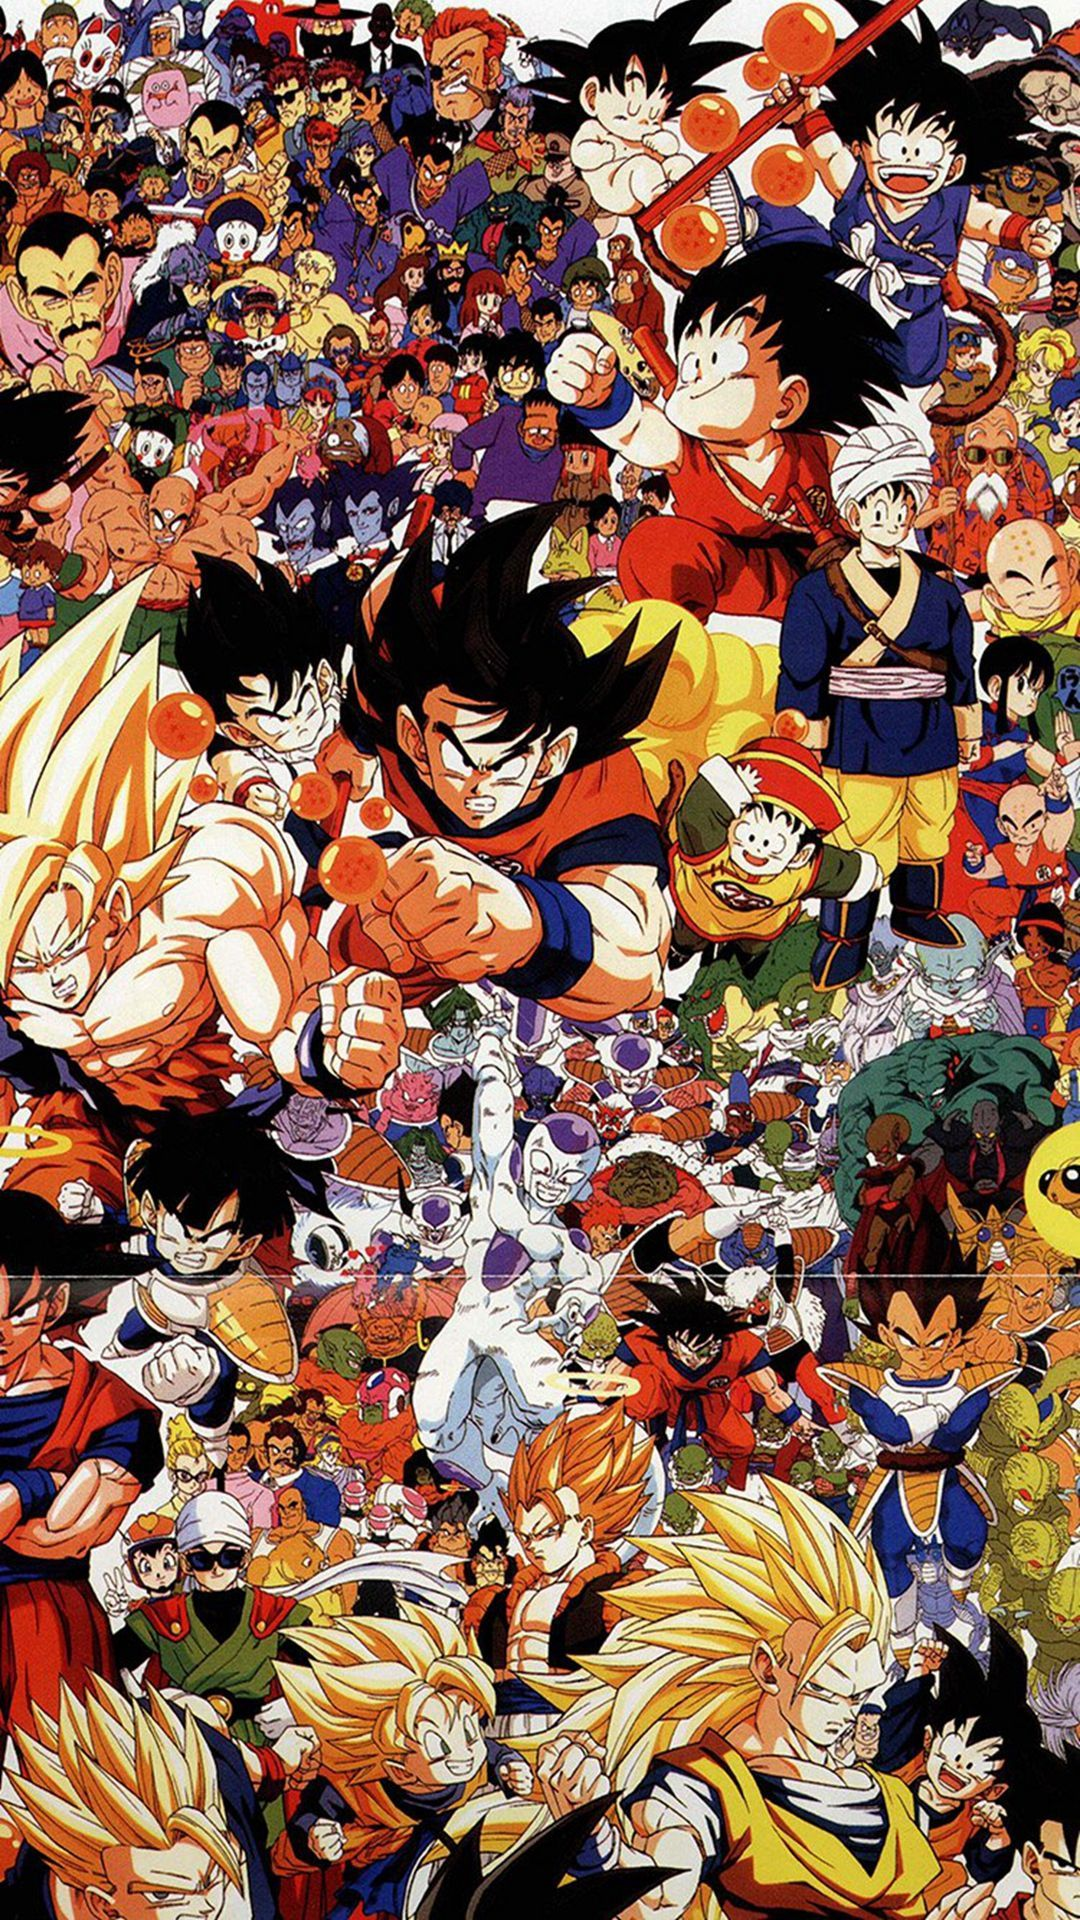 40 Iphone Anime Wallpapers Download At Wallpaperbro Dragon Ball Wallpaper Iphone Dbz Wallpapers Dragonball Z Wallpaper 21 anime wallpaper for iphone x